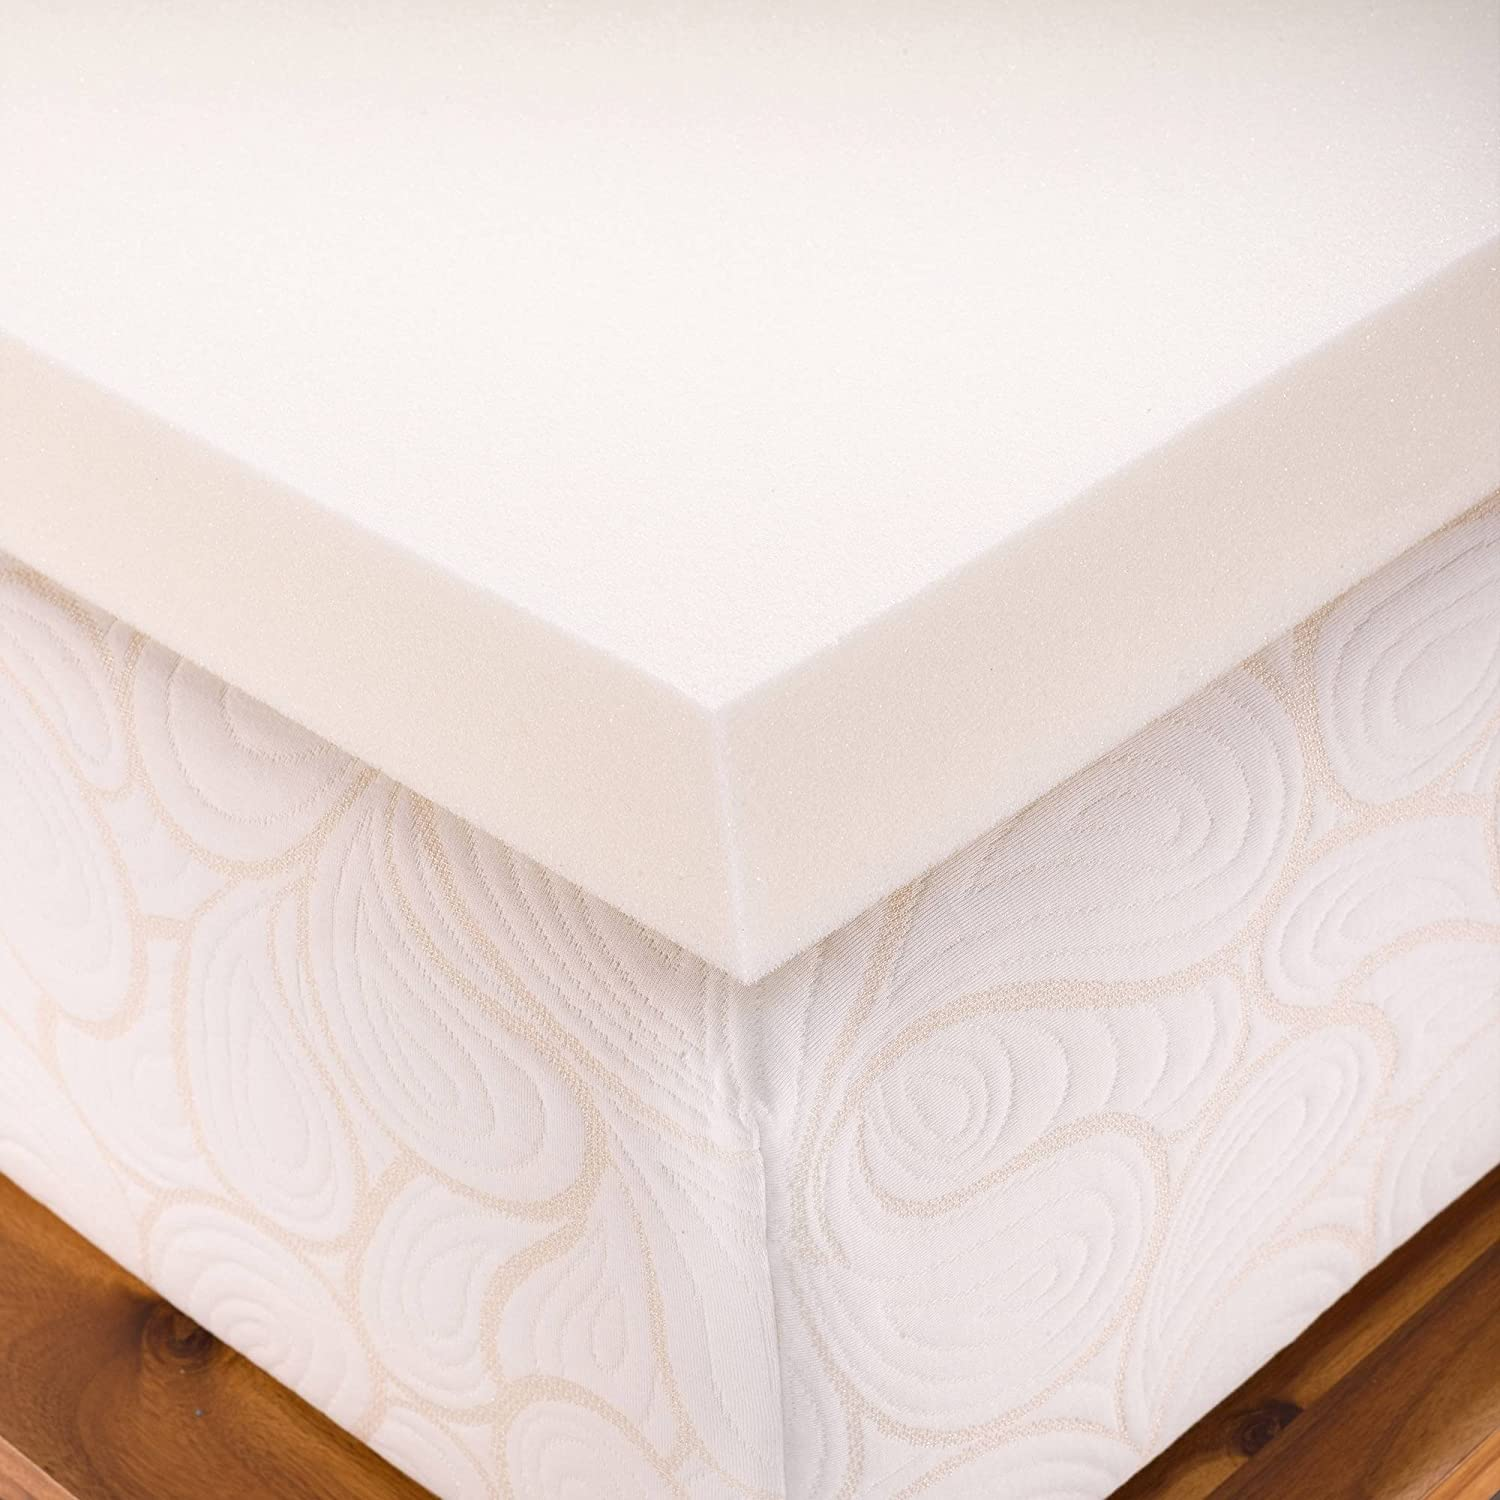 American Queen Max 84% OFF Size 2 Inch Firm Milwaukee Mall Conventional Polyurethane Thick